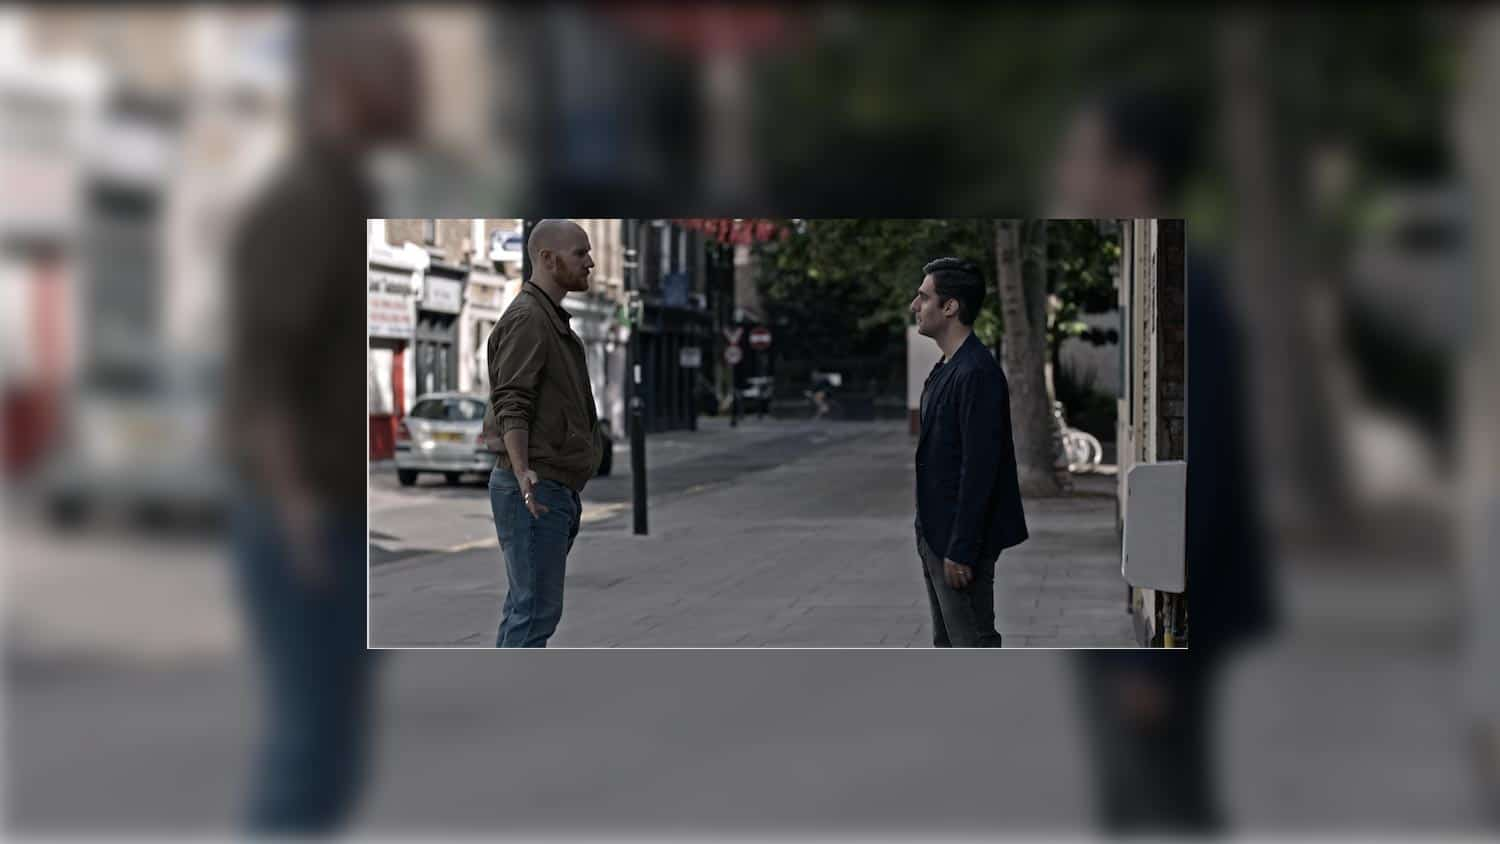 Two Strangers Who Meet Five Times Review – Do I Know You? - OC Movie Reviews - Movie Reviews, Movie News, Documentary Reviews, Short Films, Short Film Reviews, Trailers, Movie Trailers, Interviews, film reviews, film news, hollywood, indie films, documentaries